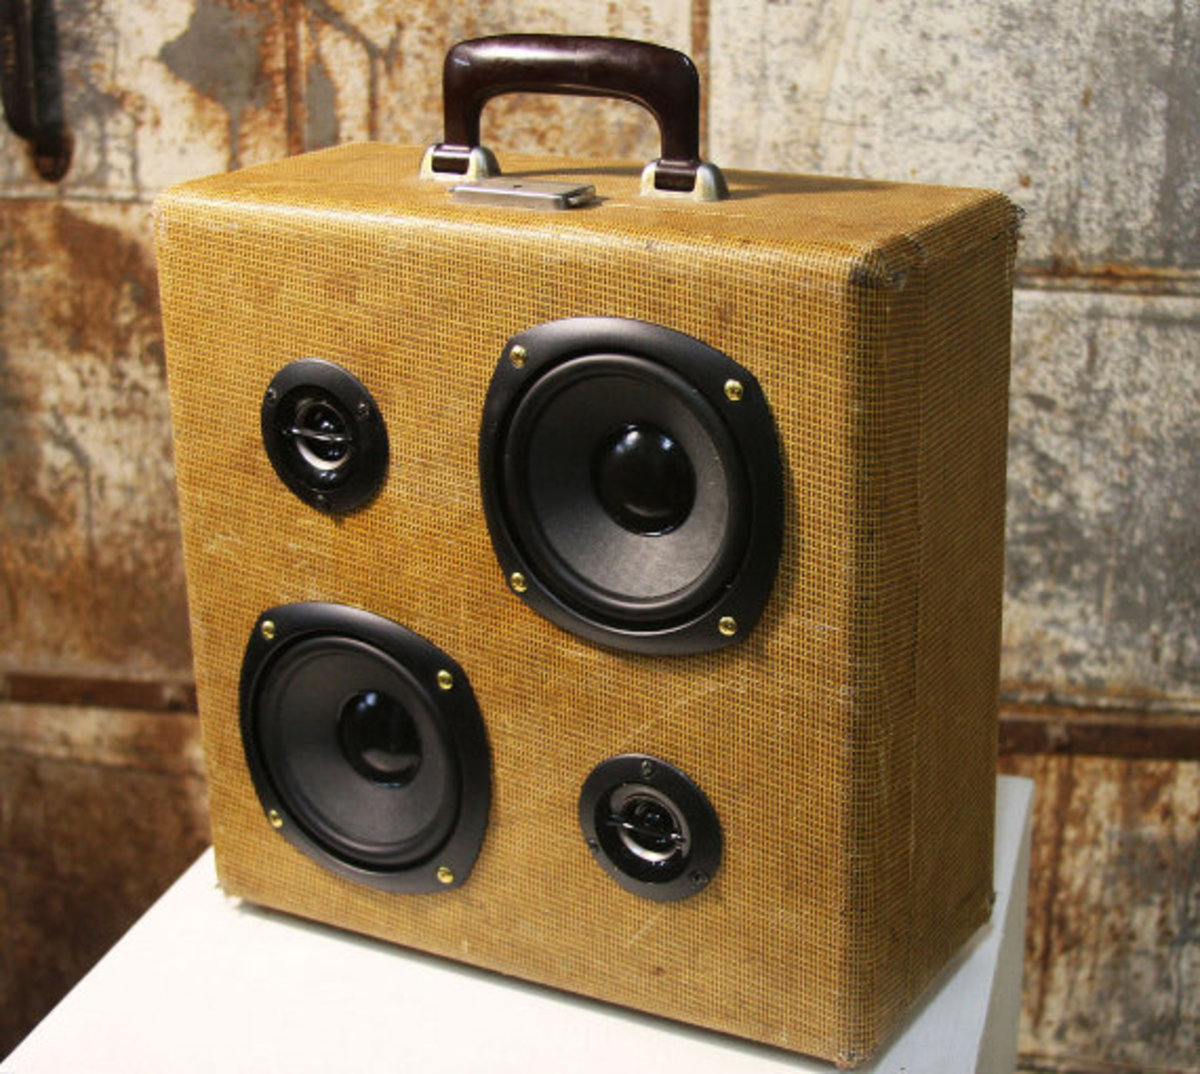 case-of-base-recycled-vintage-suitcase-boombox-03